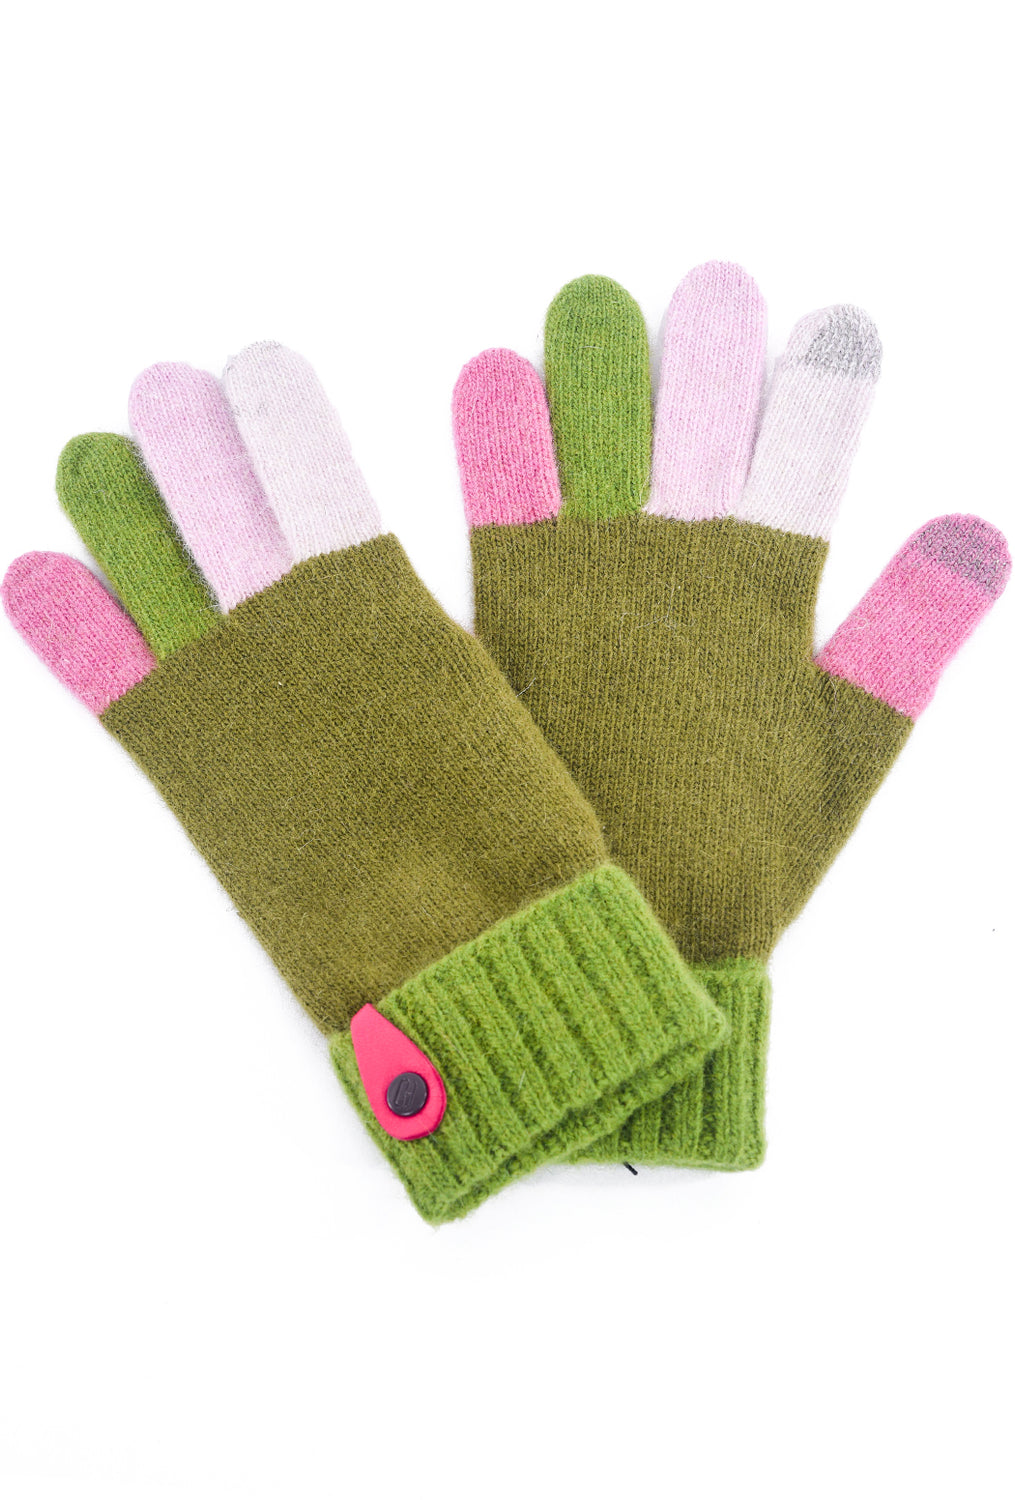 Santacana Madrid Multi-Color Knitted Gloves, Green One Size Green